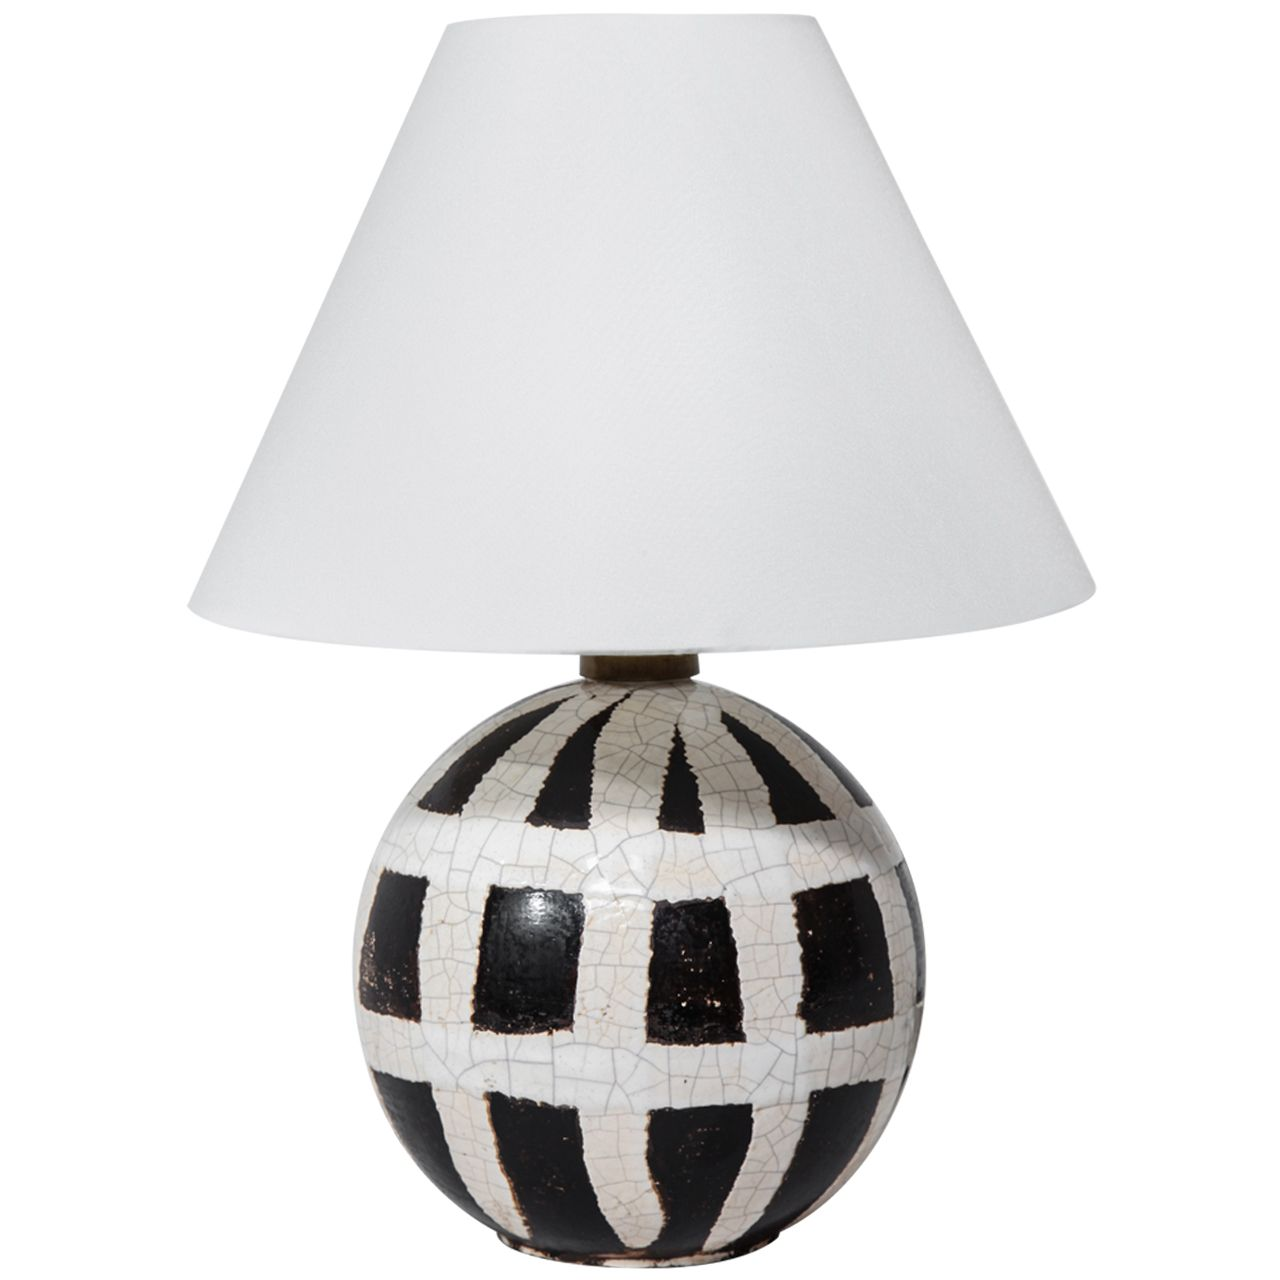 Ceramic Table Lamp By Jean Besnard From A Unique Collection Of Antique And Modern Table Lamps At H With Images Vintage Table Lamp Ceramic Table Lamps White Ceramic Lamps